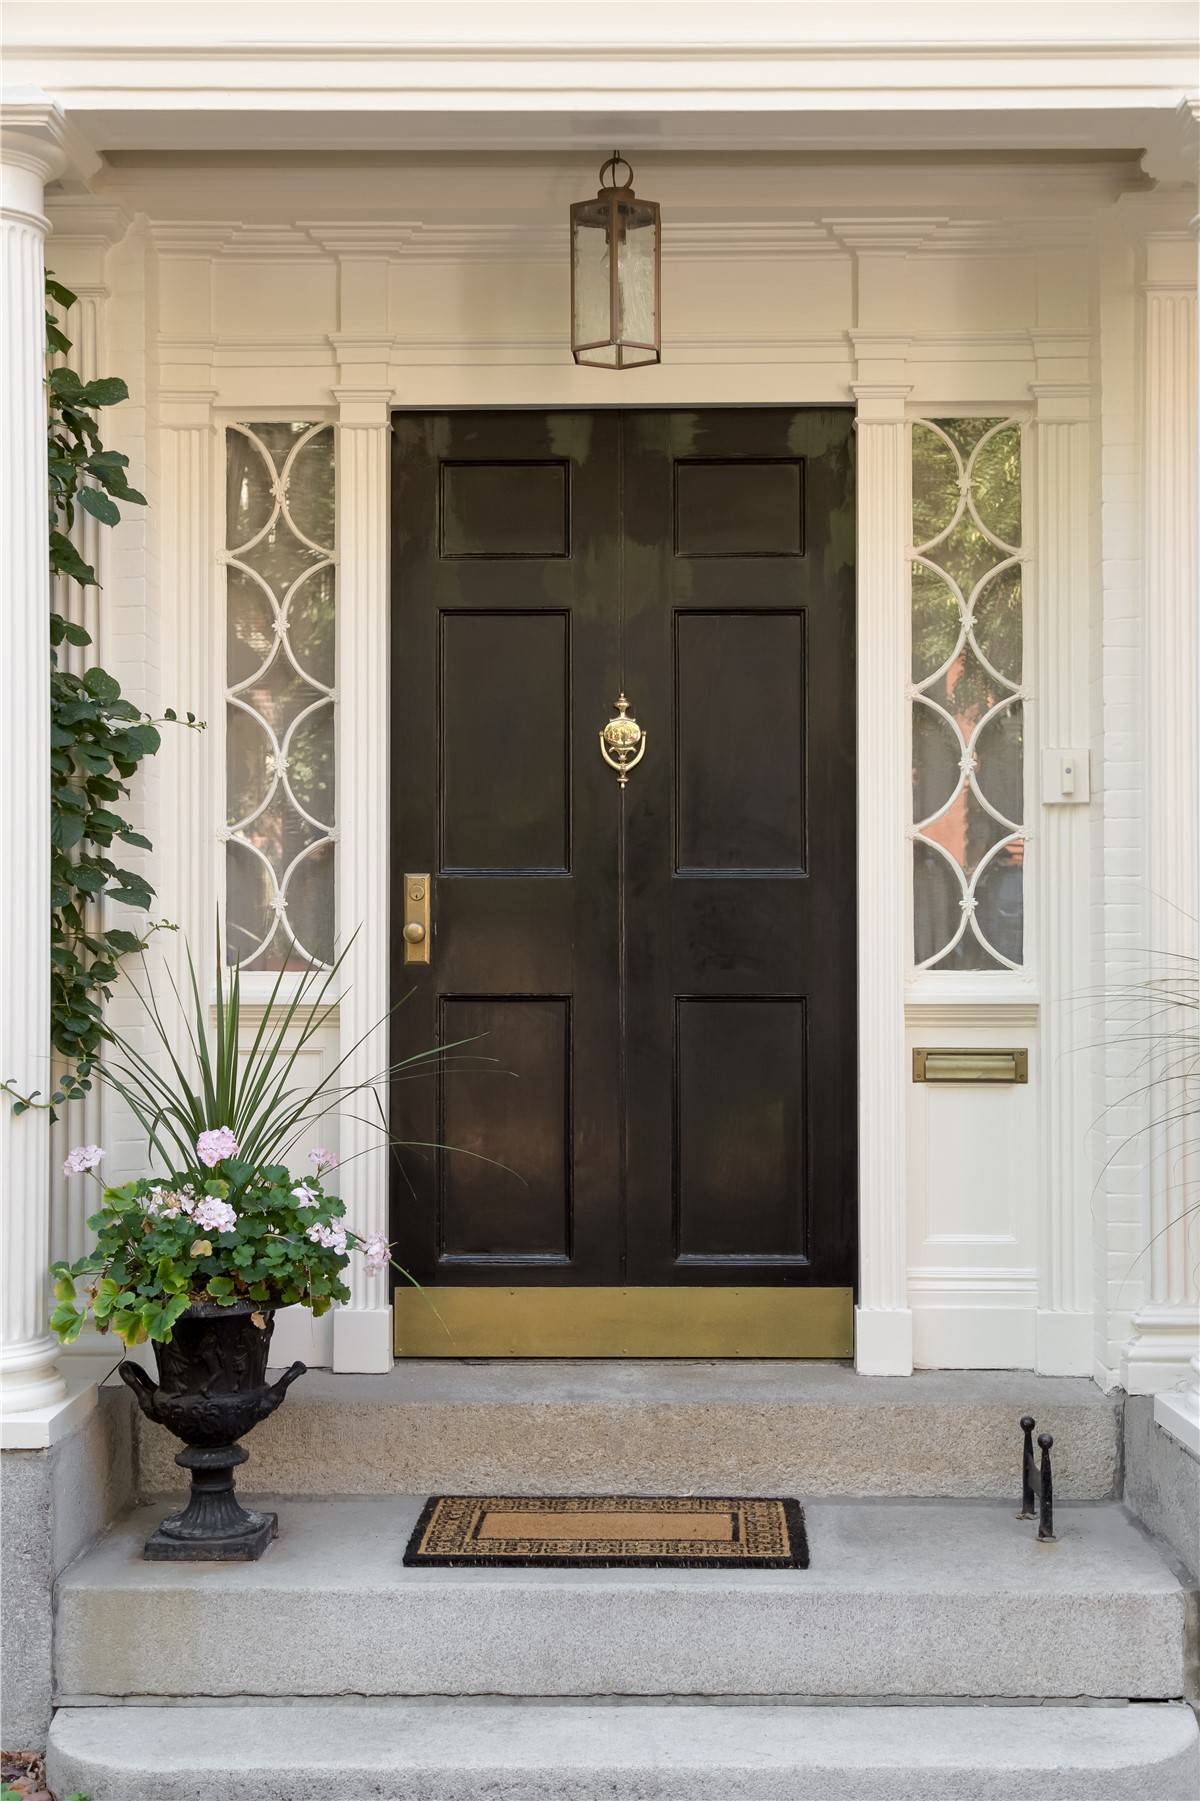 homes steel entry paint of residential for door image doors frame metal stainless front matano co